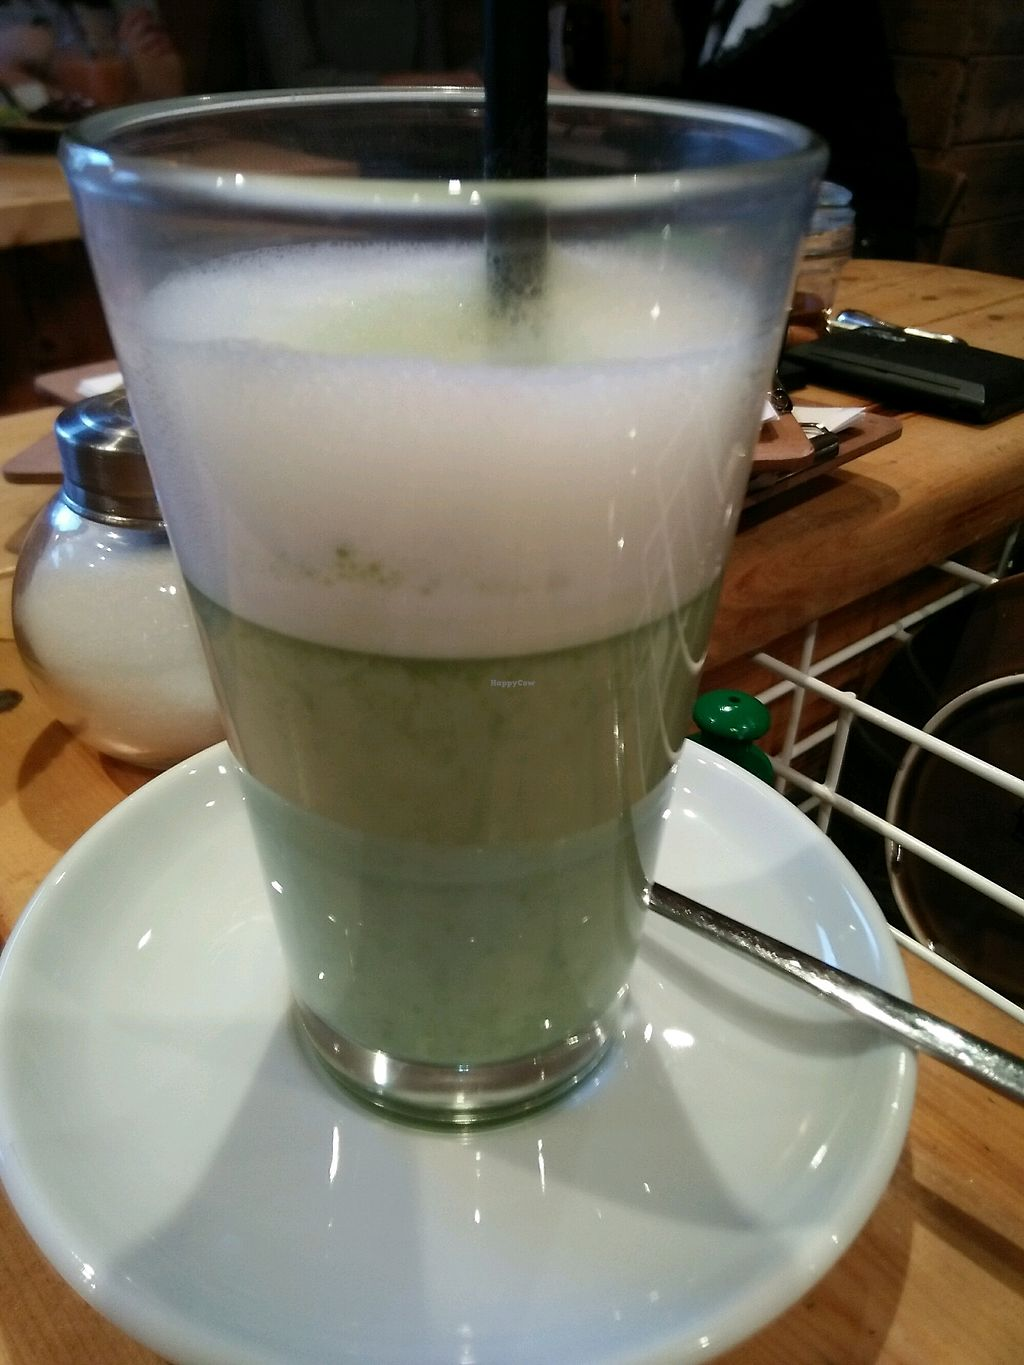 """Photo of Green Leaf Cafe  by <a href=""""/members/profile/MichaelGreen"""">MichaelGreen</a> <br/>Macha Latte  <br/> March 11, 2018  - <a href='/contact/abuse/image/89234/369359'>Report</a>"""